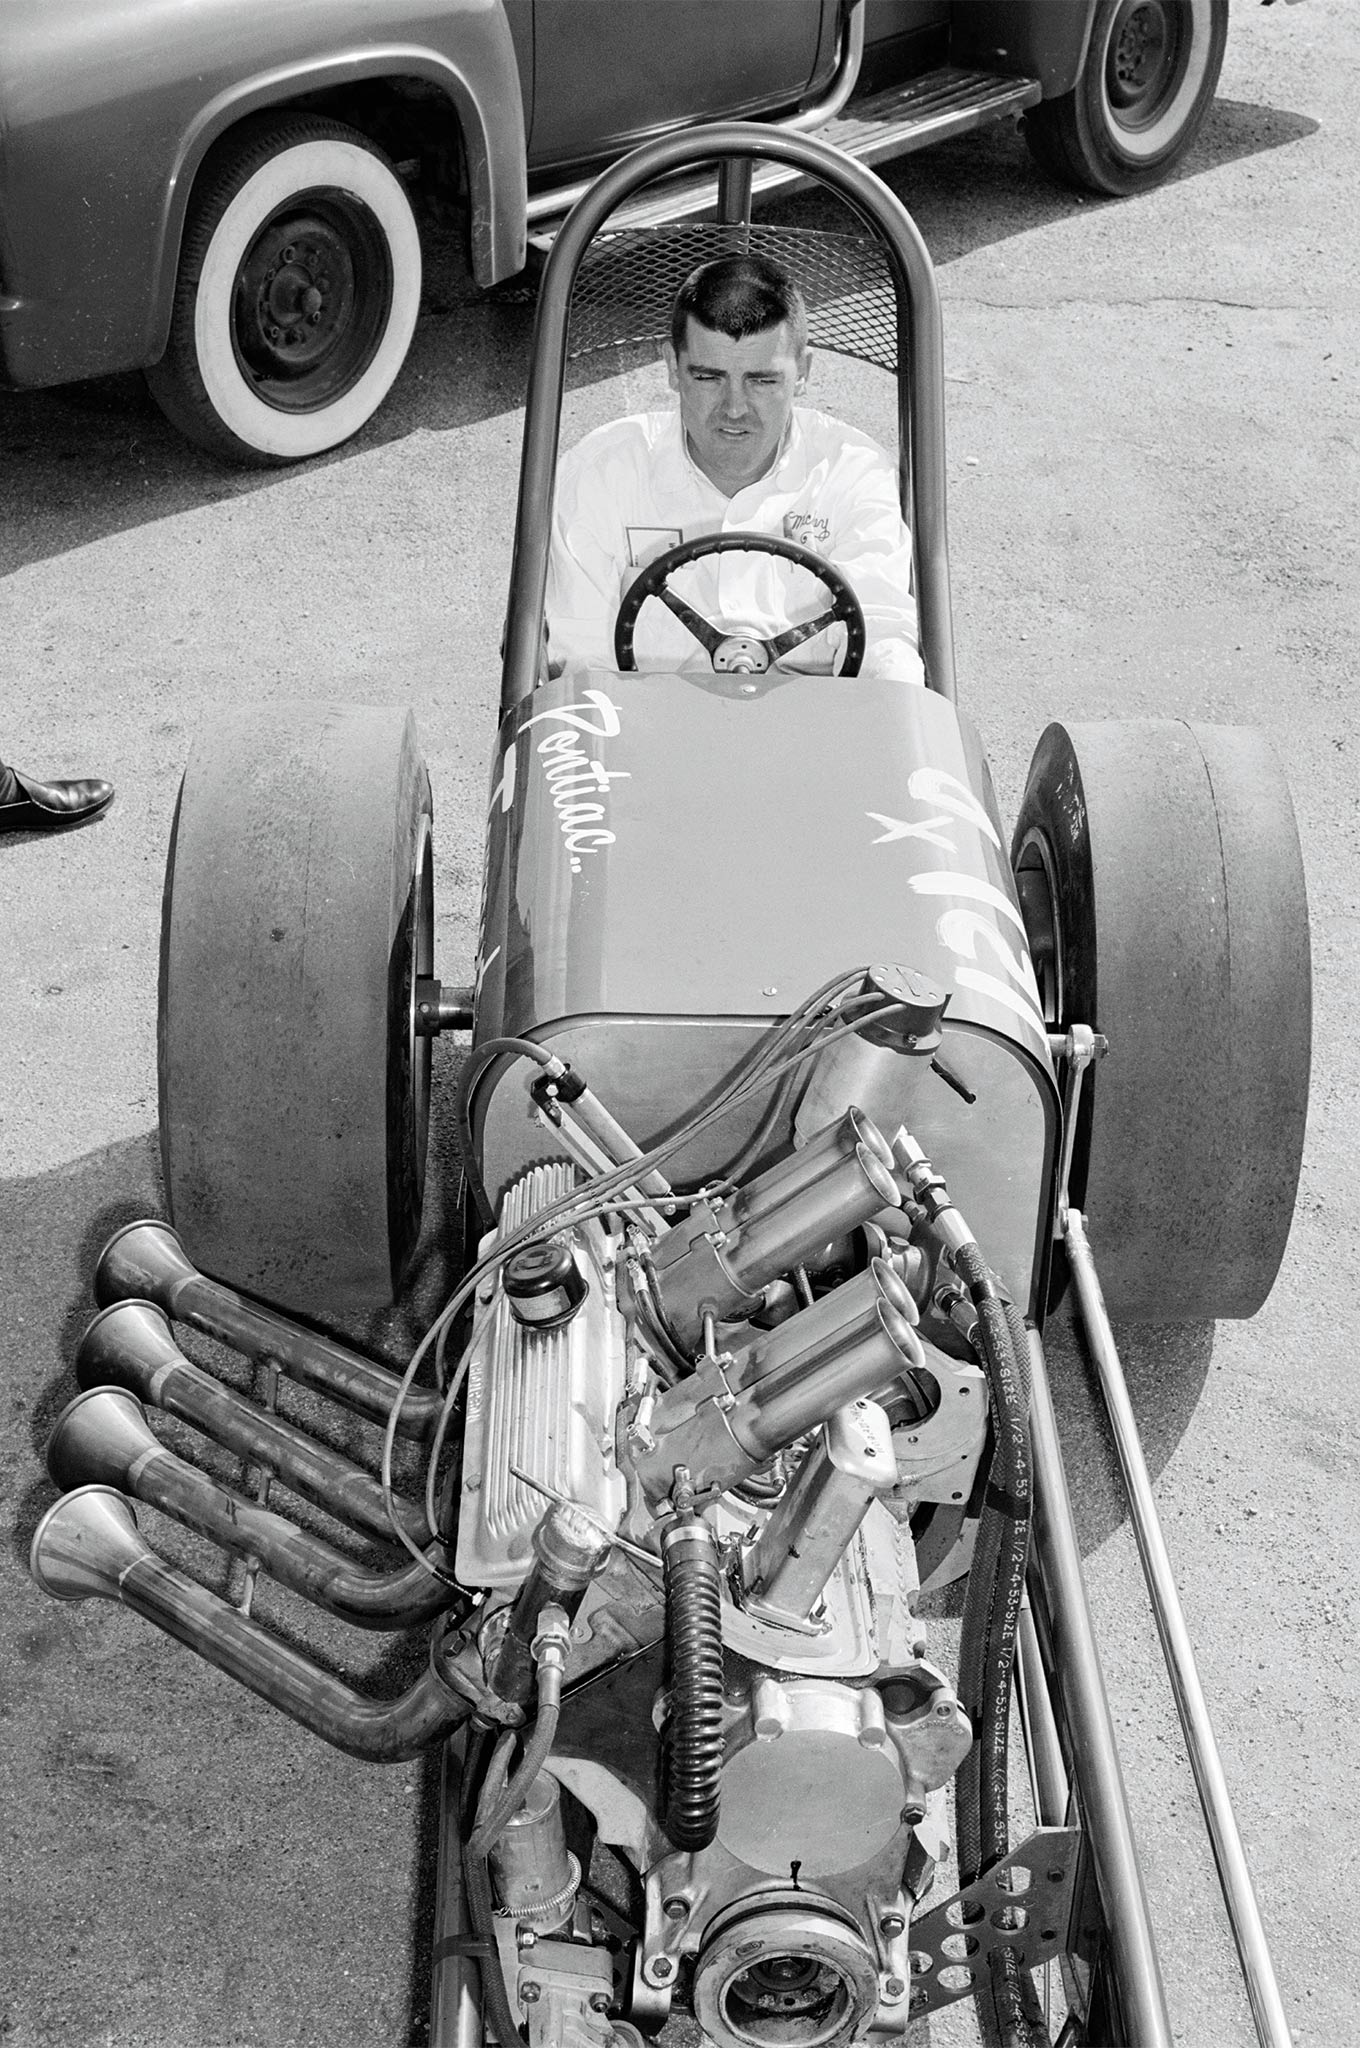 Mickey Thompson fielded five dragsters and several stock cars, going on to win Middle Eliminator with this injected half-a-V8 Pontiac banger, beating all comers with a 10.50 at 131 mph in the final to the B/altered of Hirshfield and Buky.